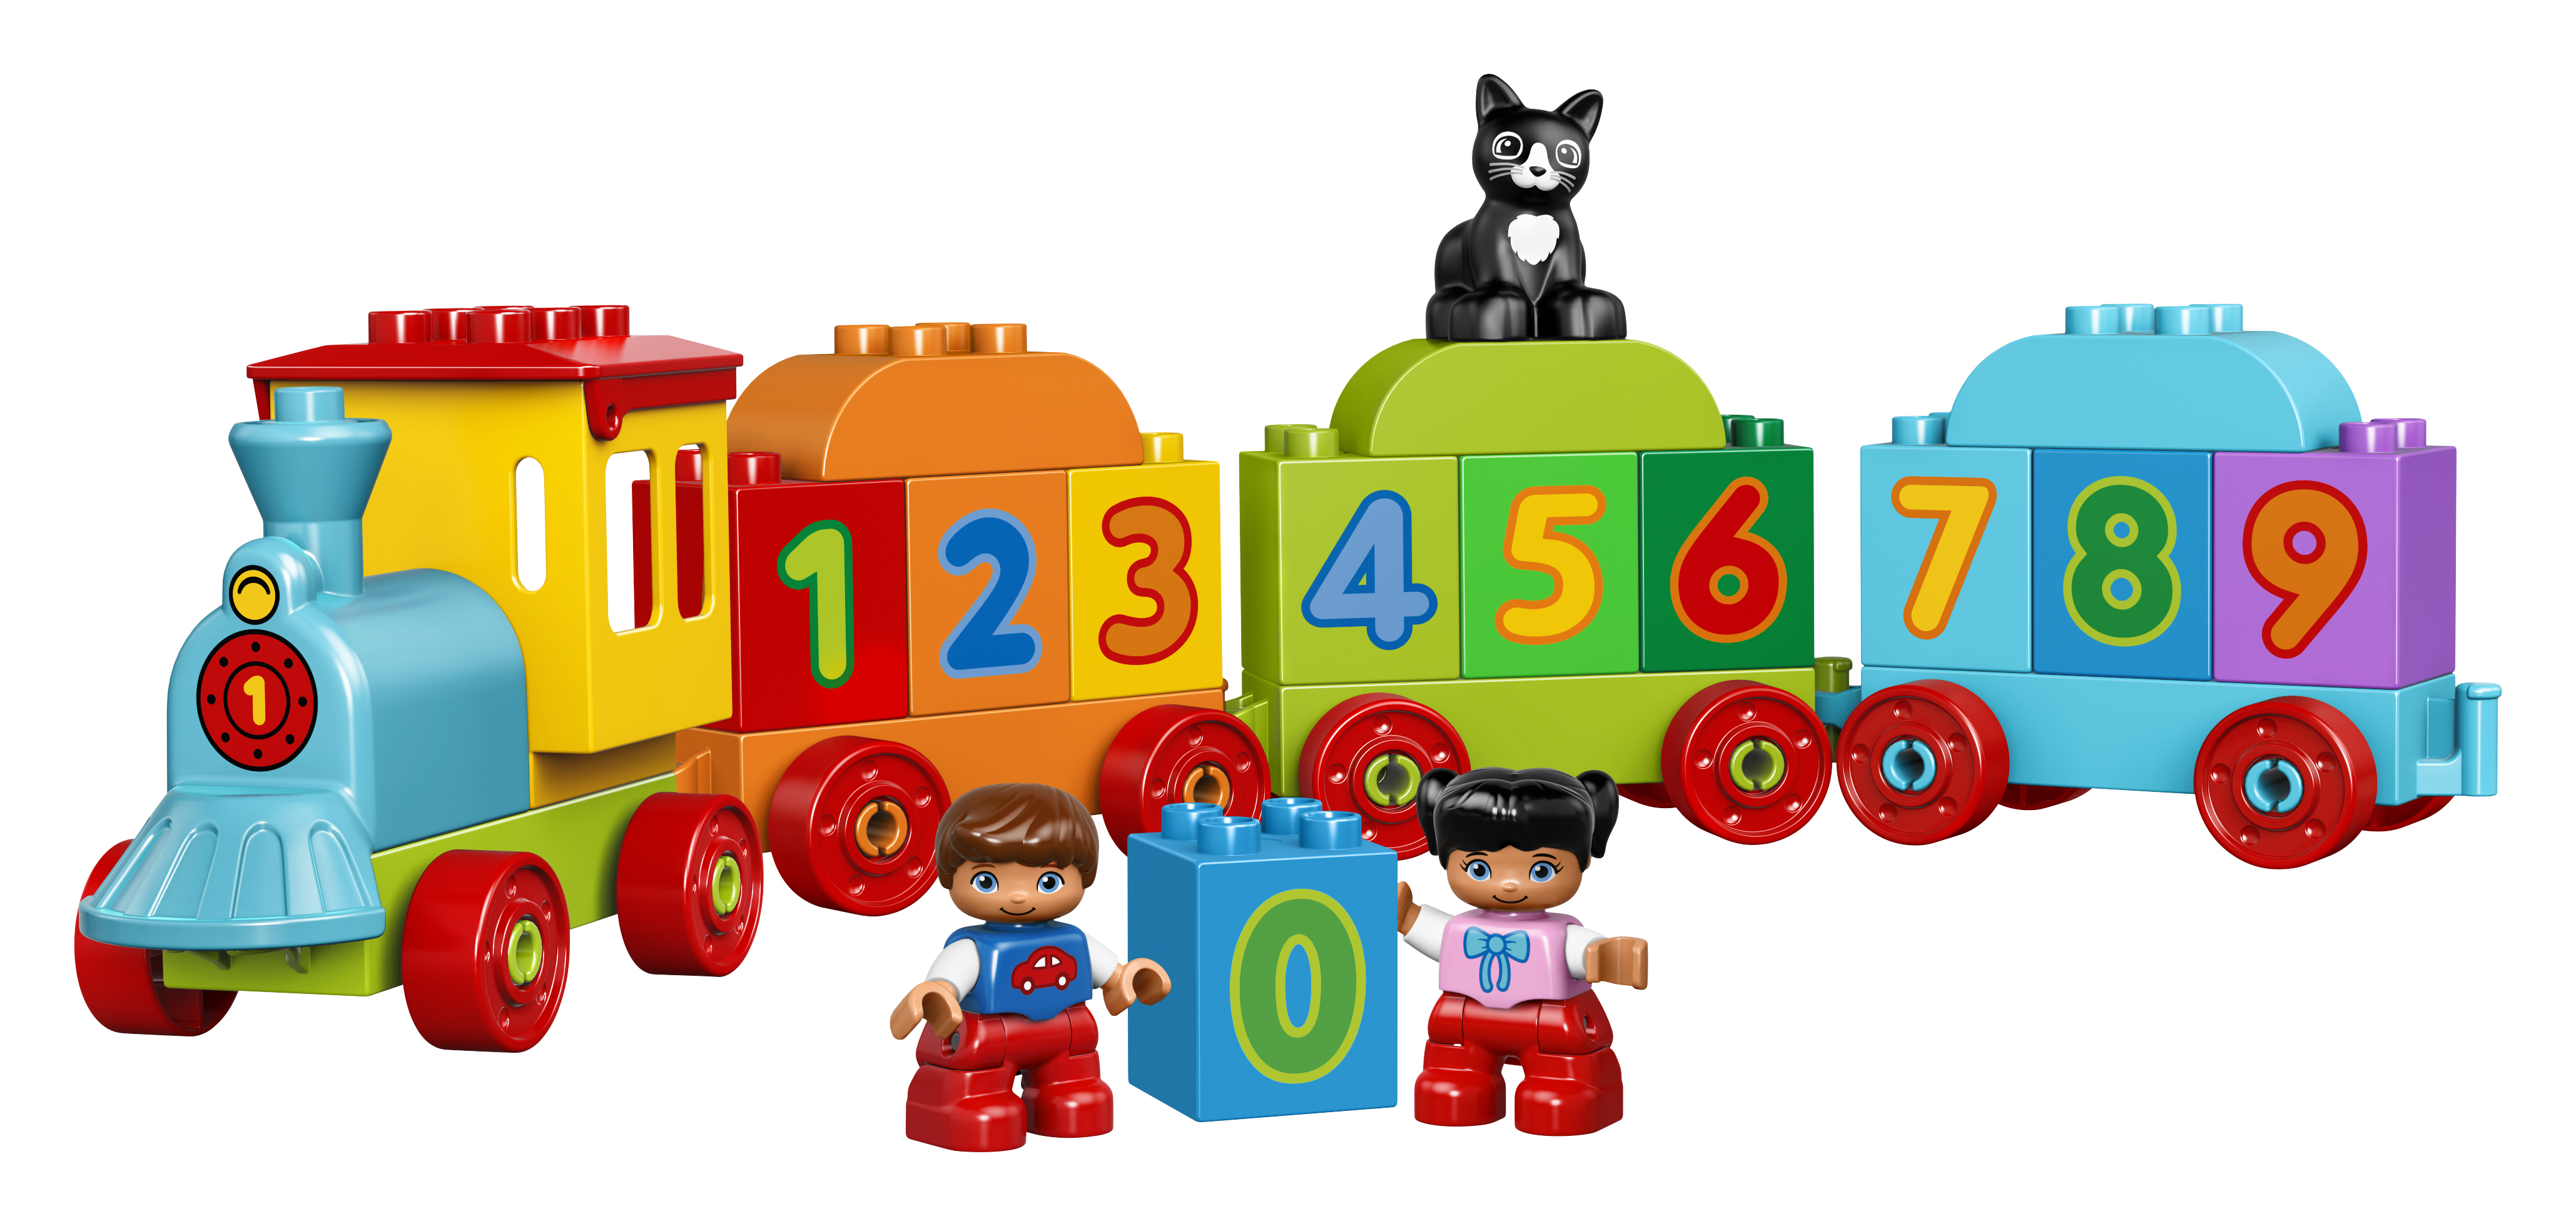 Dream Toys, Dream Toys 2017, Dream Toys list, Christmas toys, Lego Duplo number train, Duplo, Lego Duplo